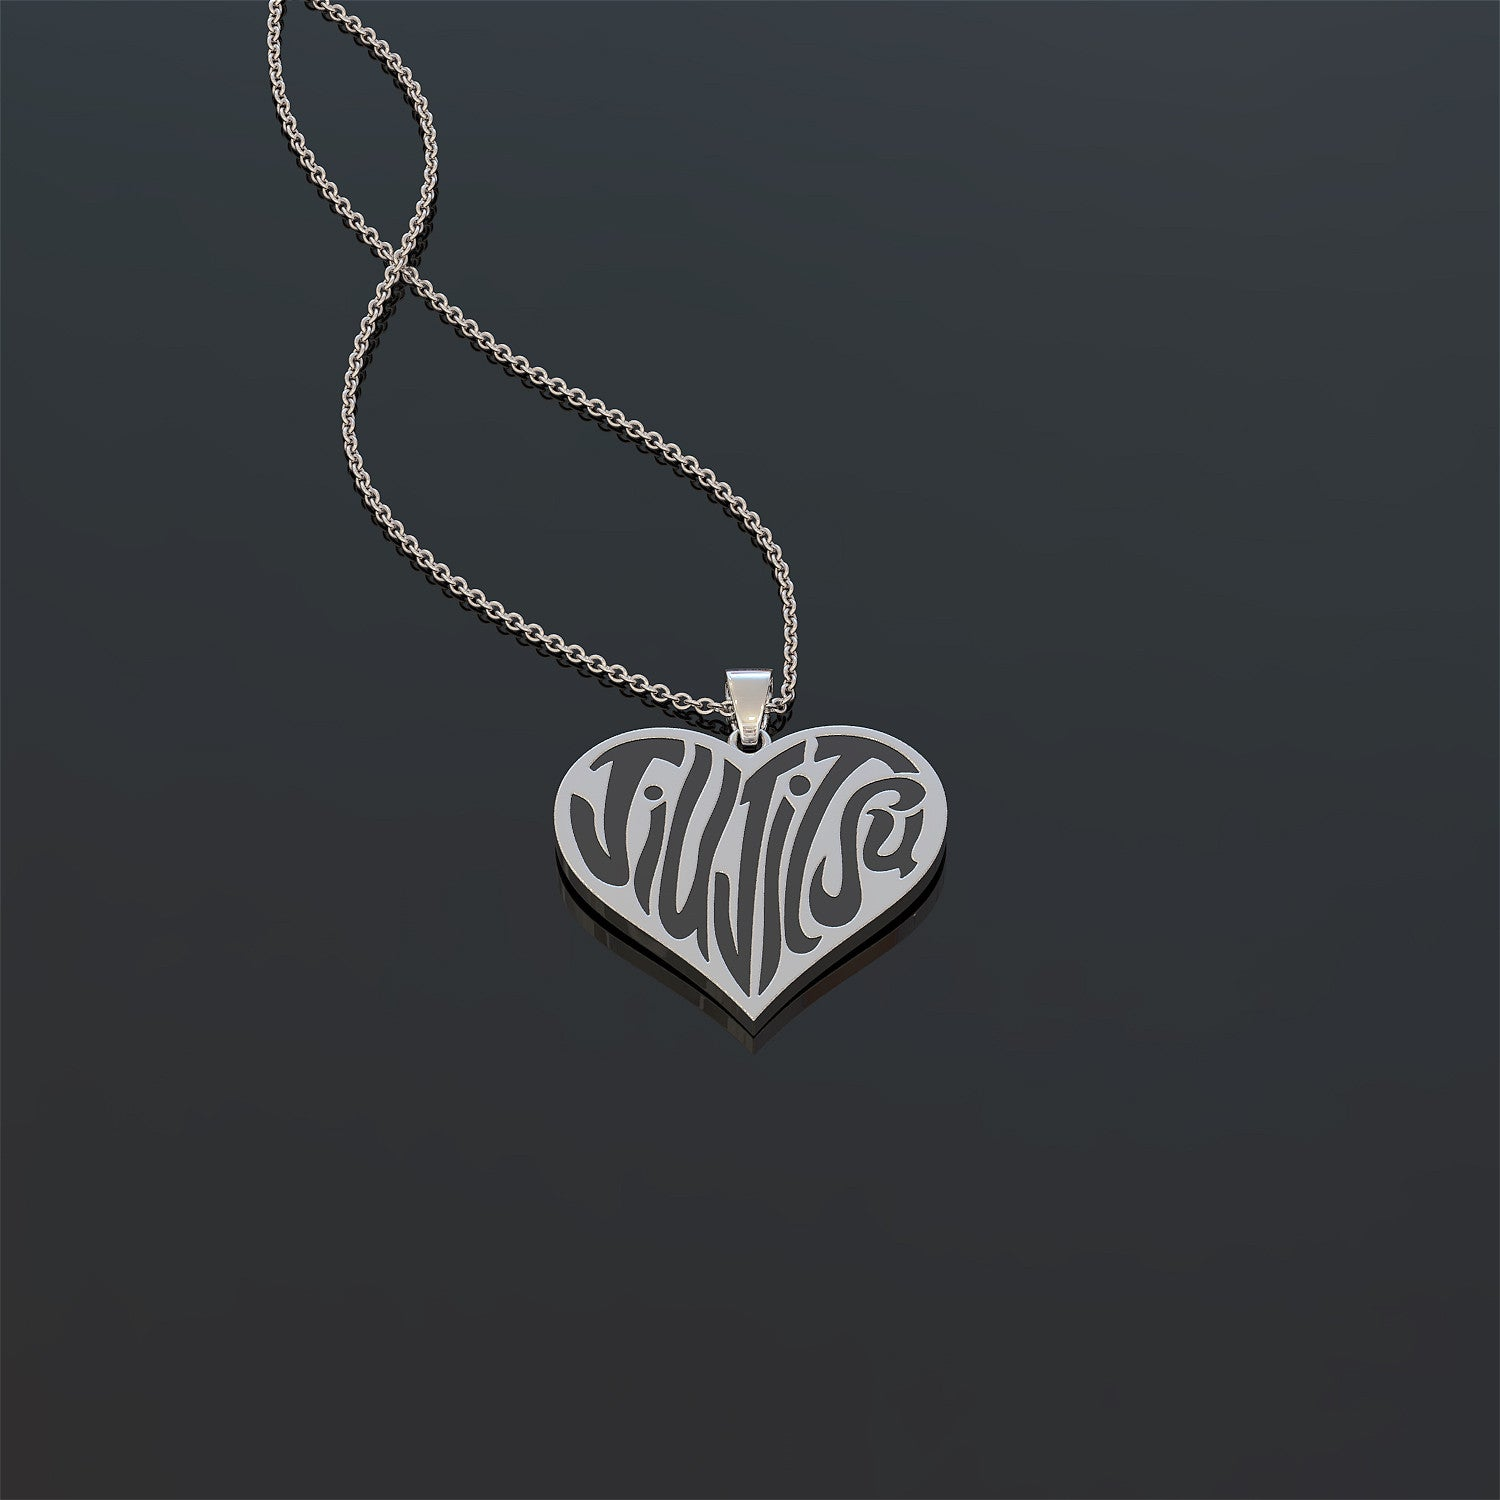 Jits Love Necklace